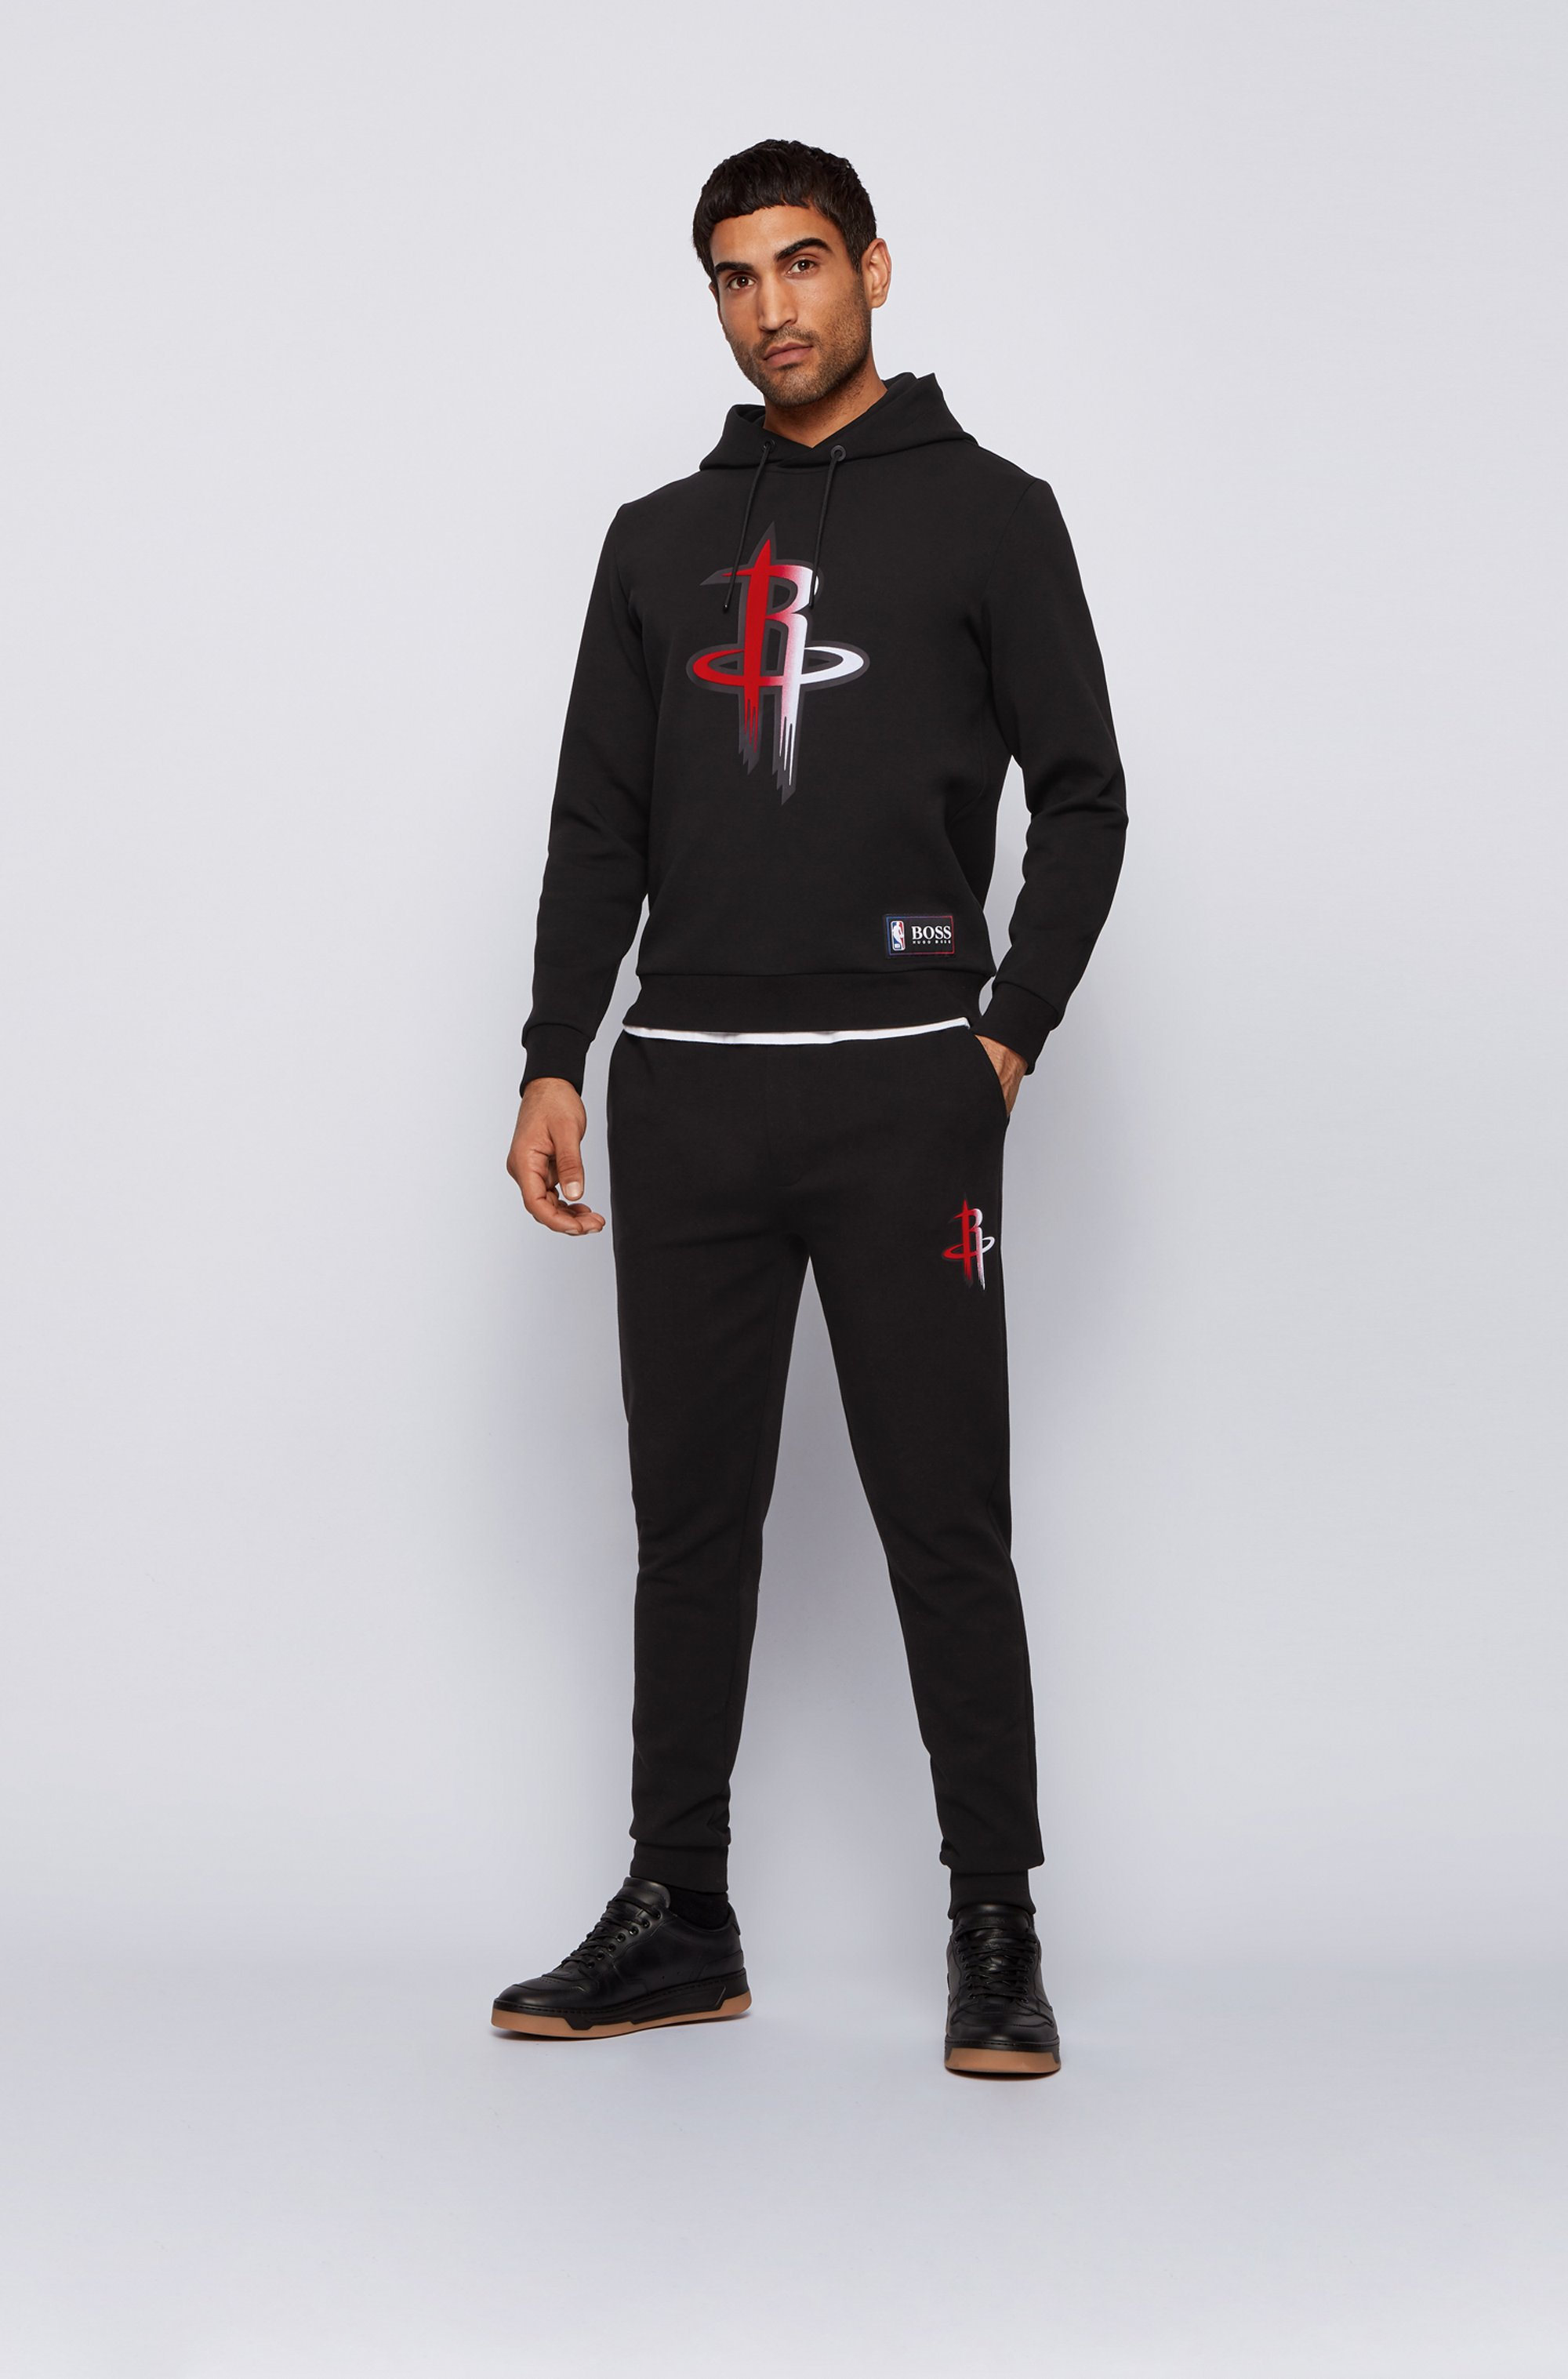 BOSS x NBA tracksuit bottoms with team logo